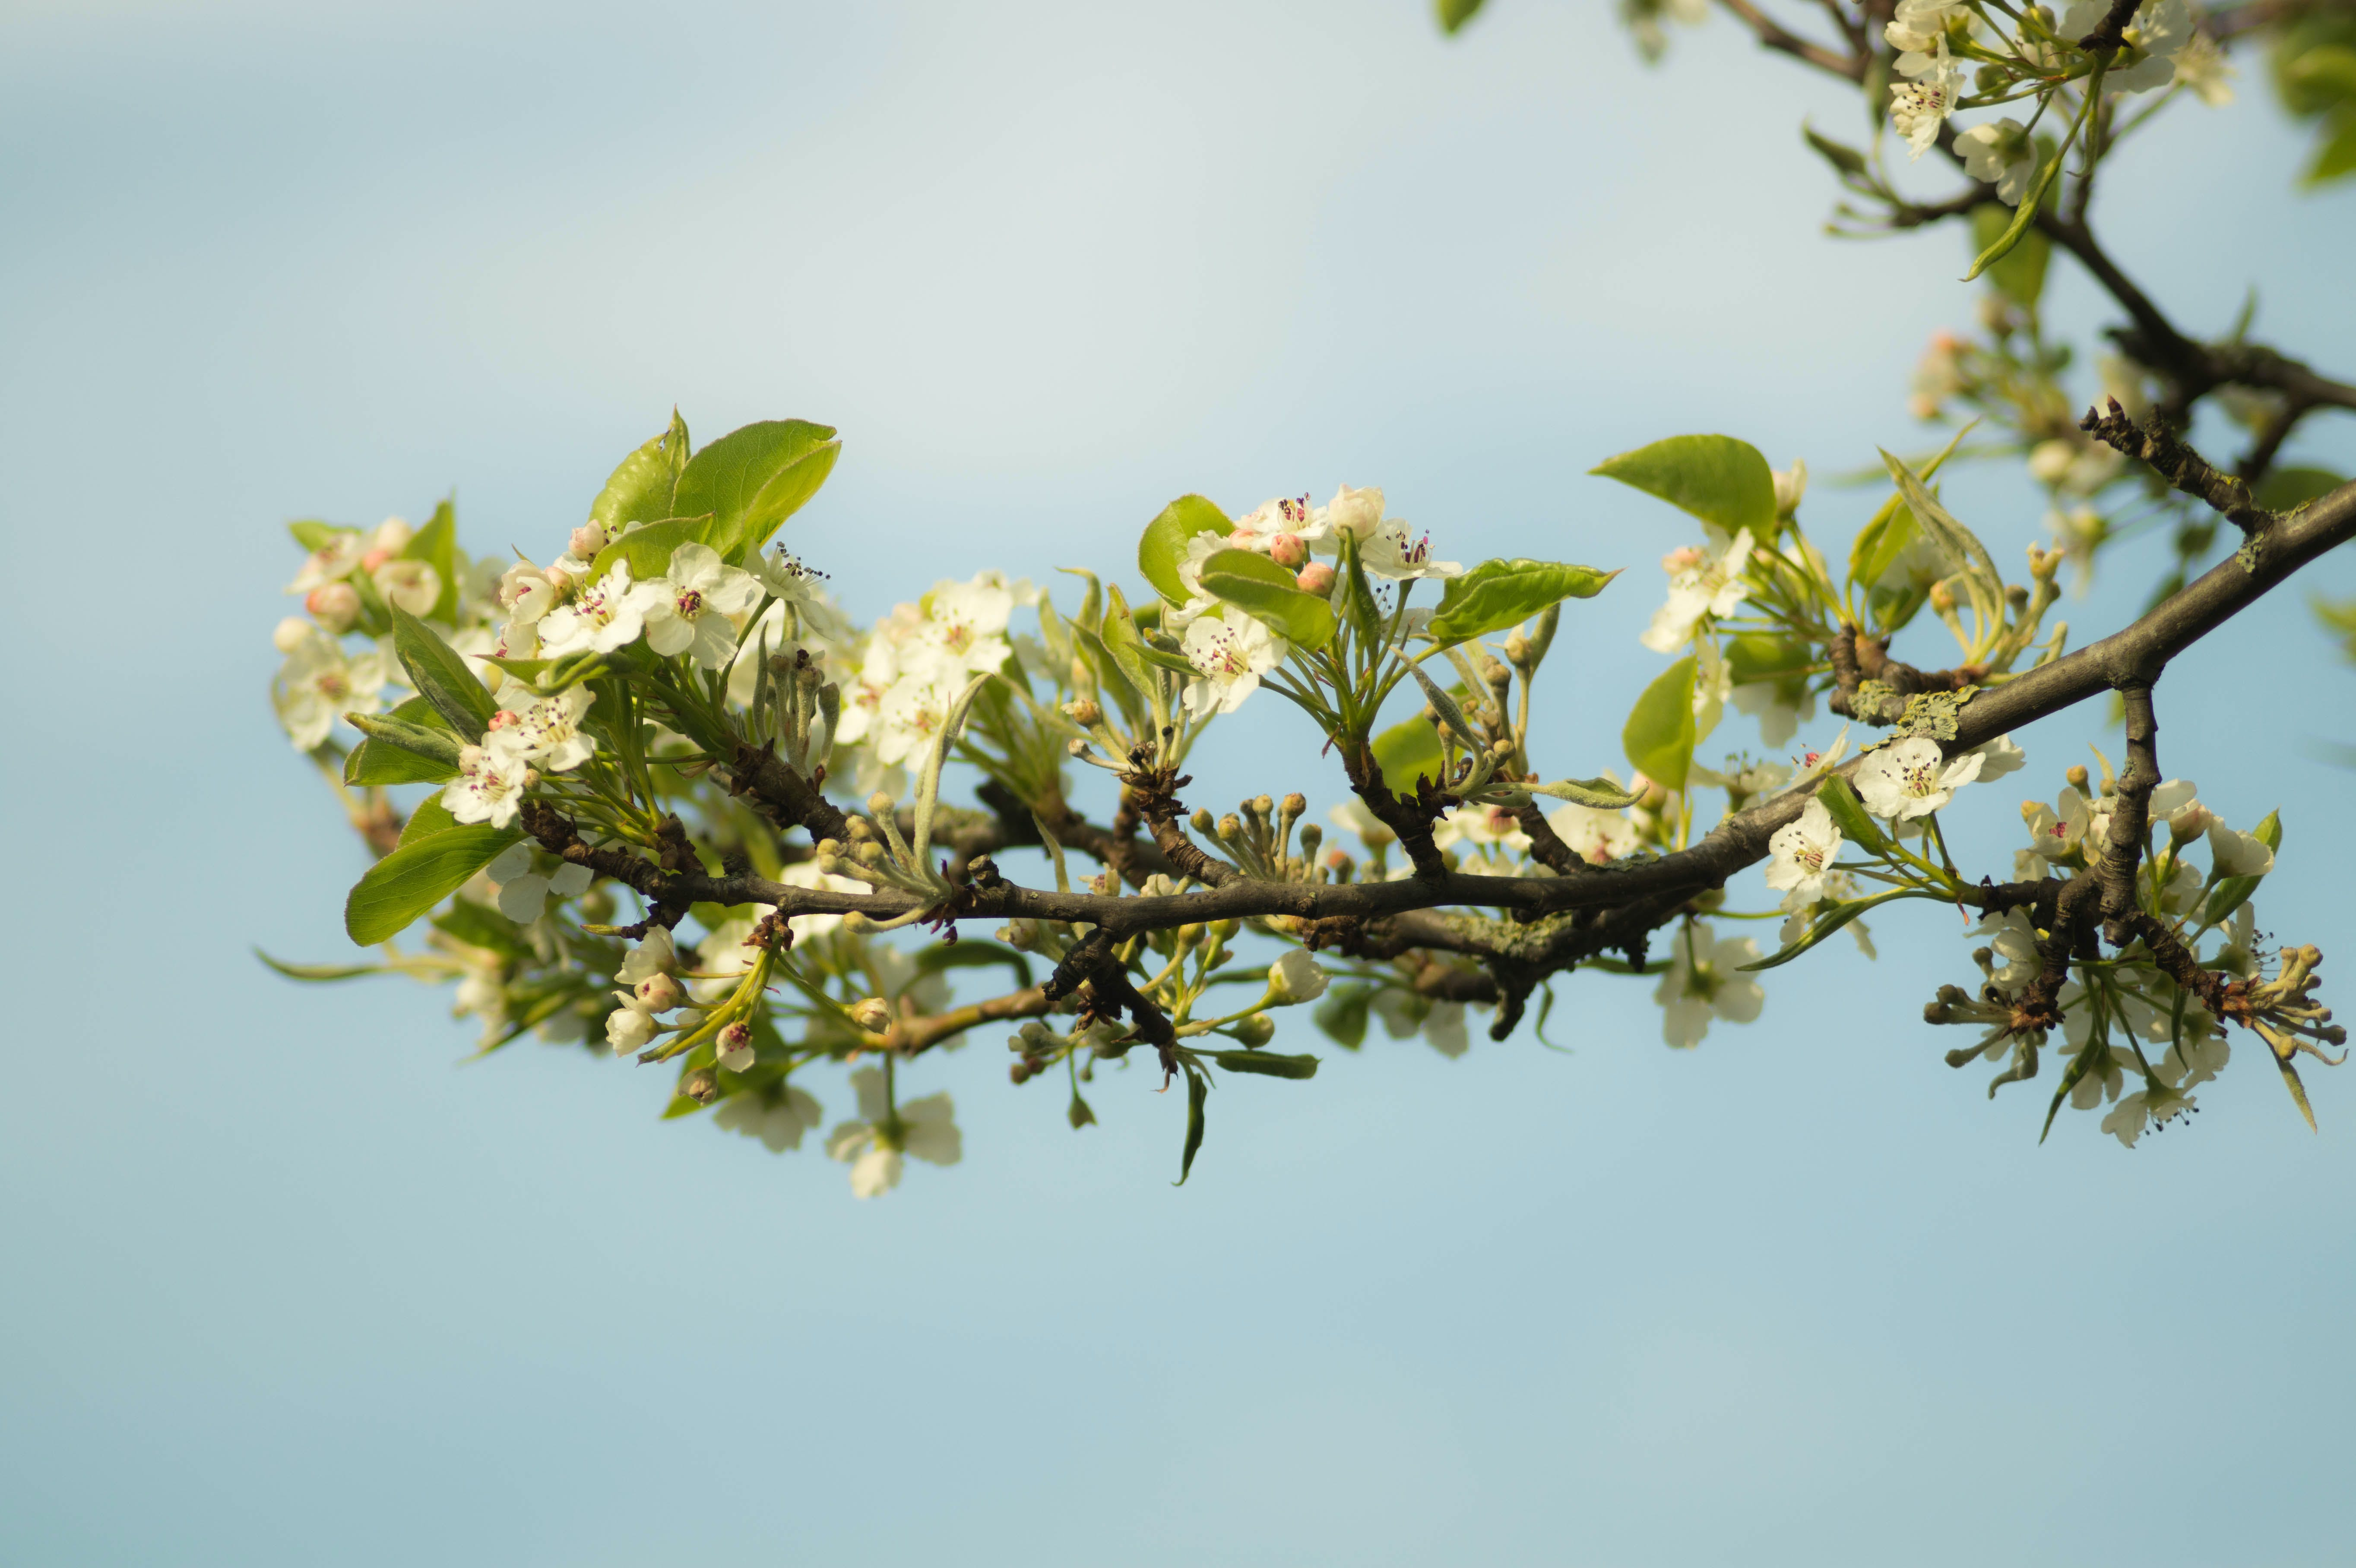 blooming, blossom, branch